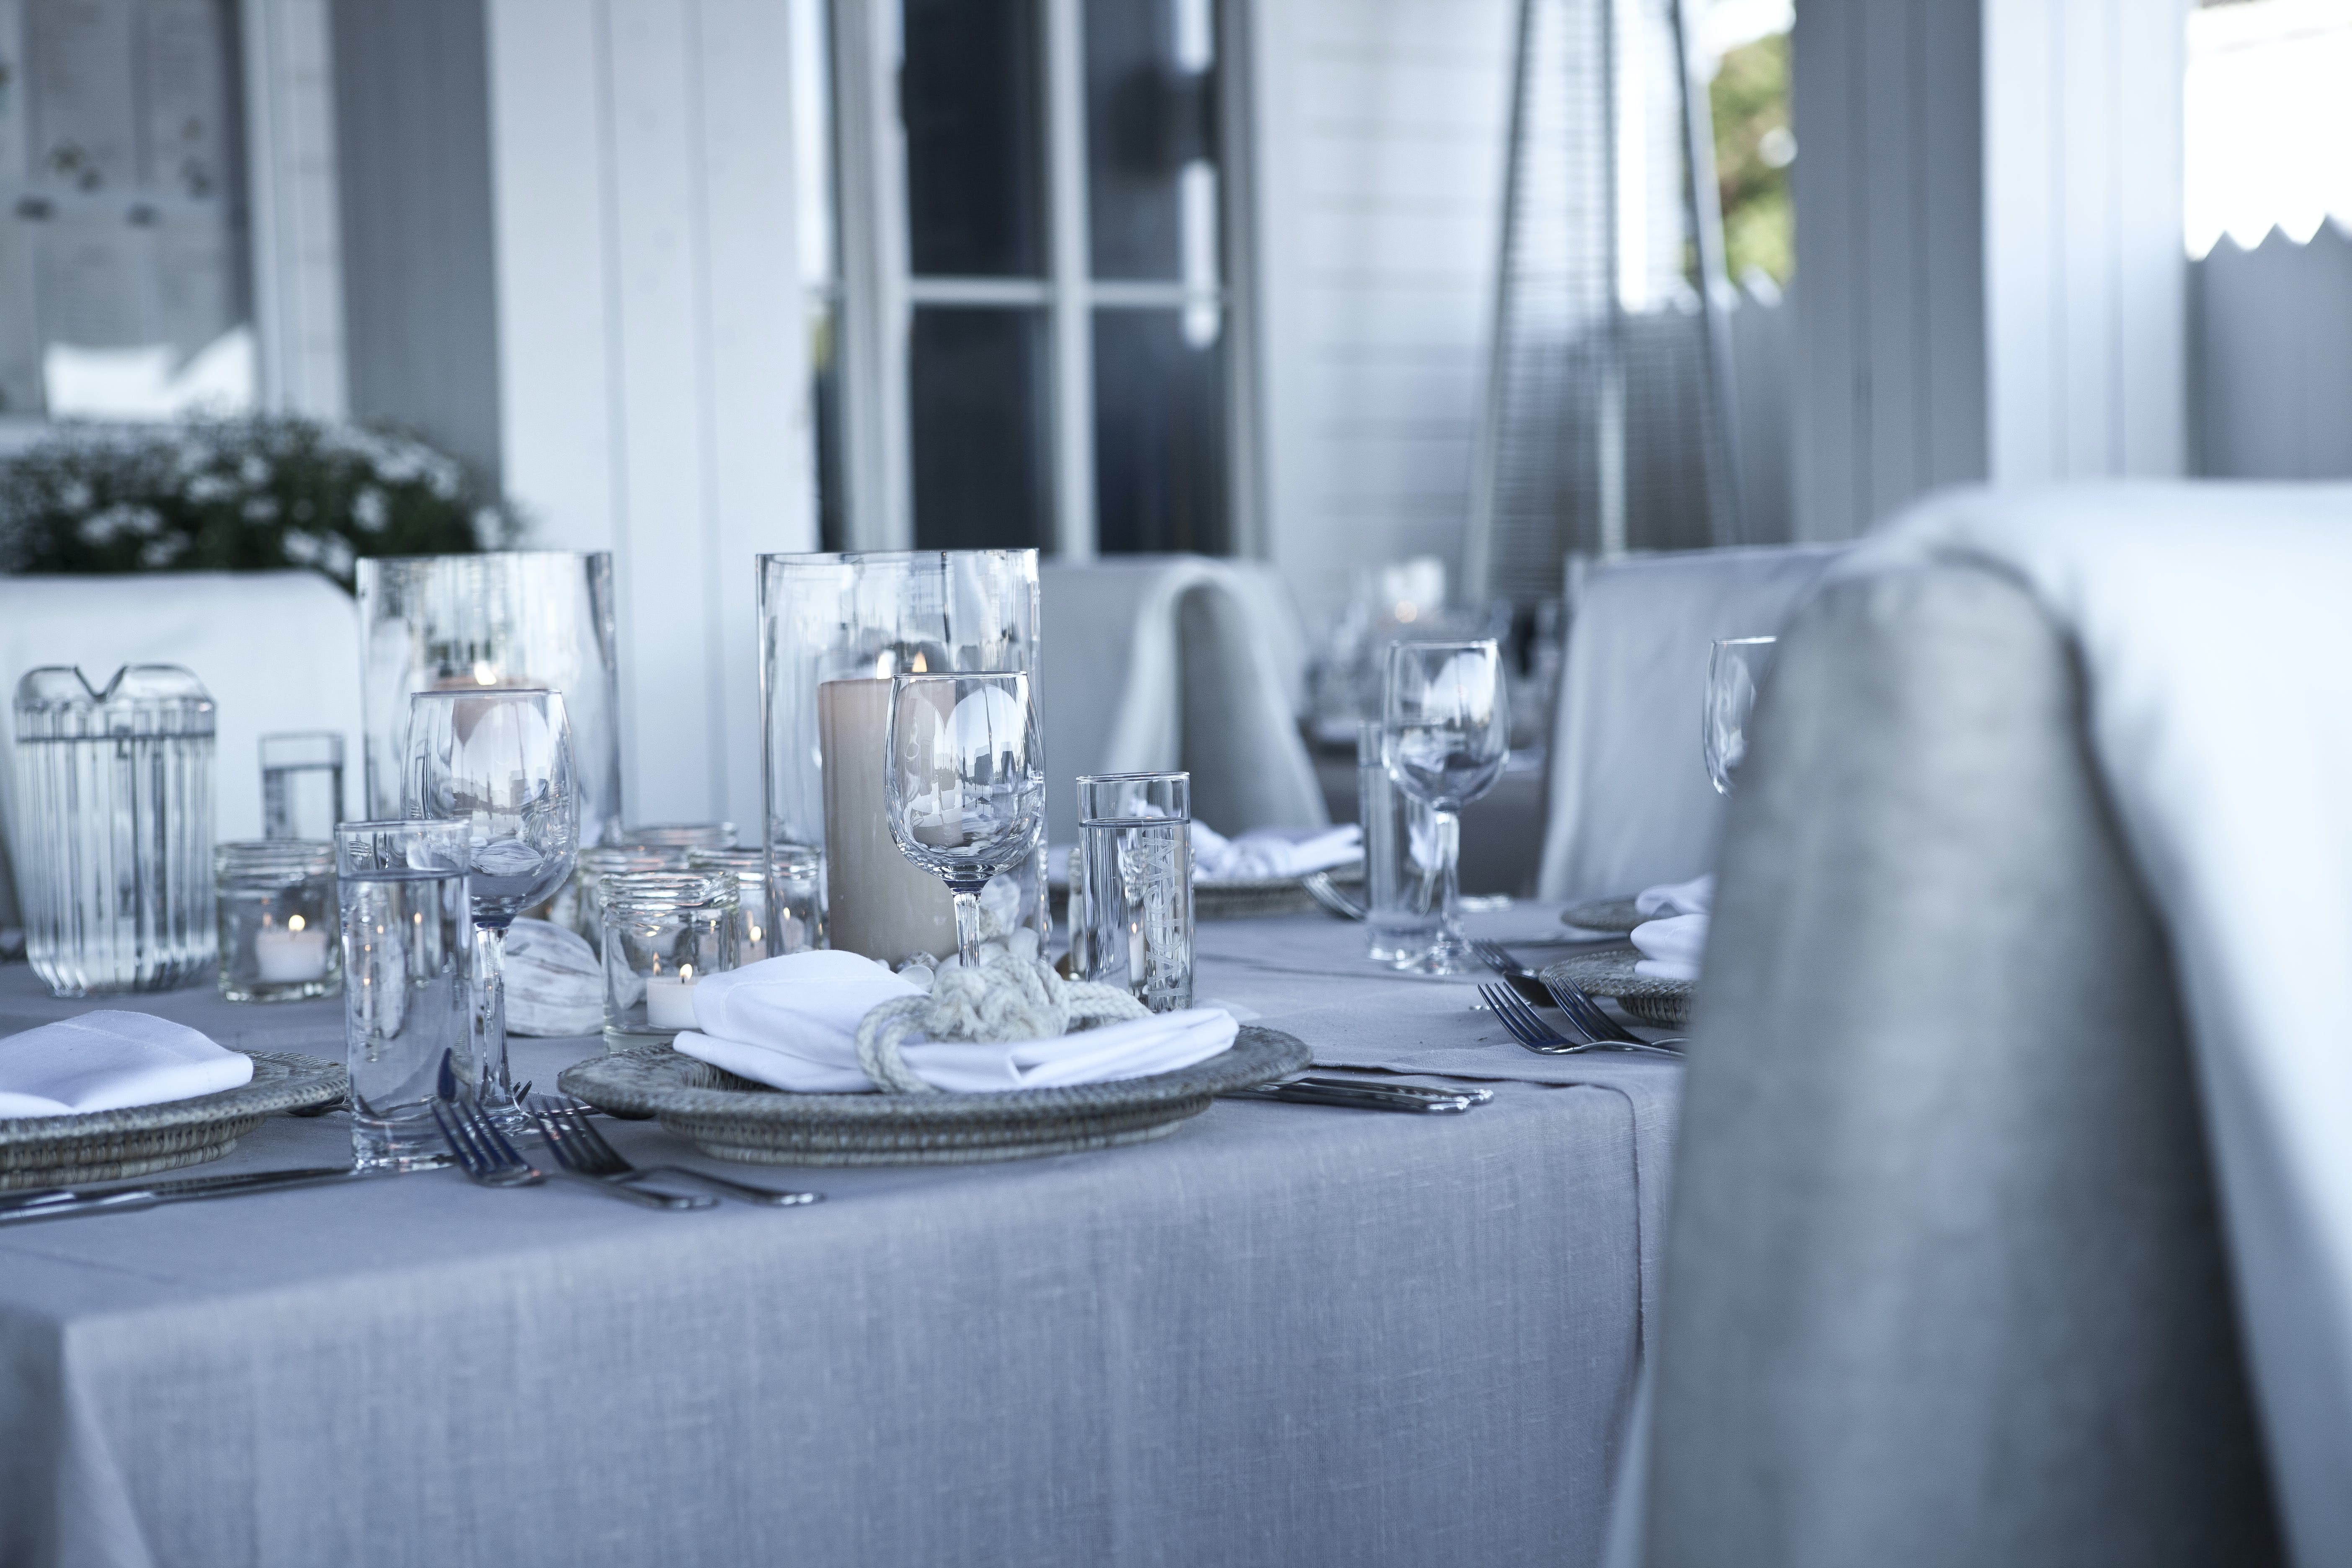 Clear Glass Dinnerwares on Gray Table